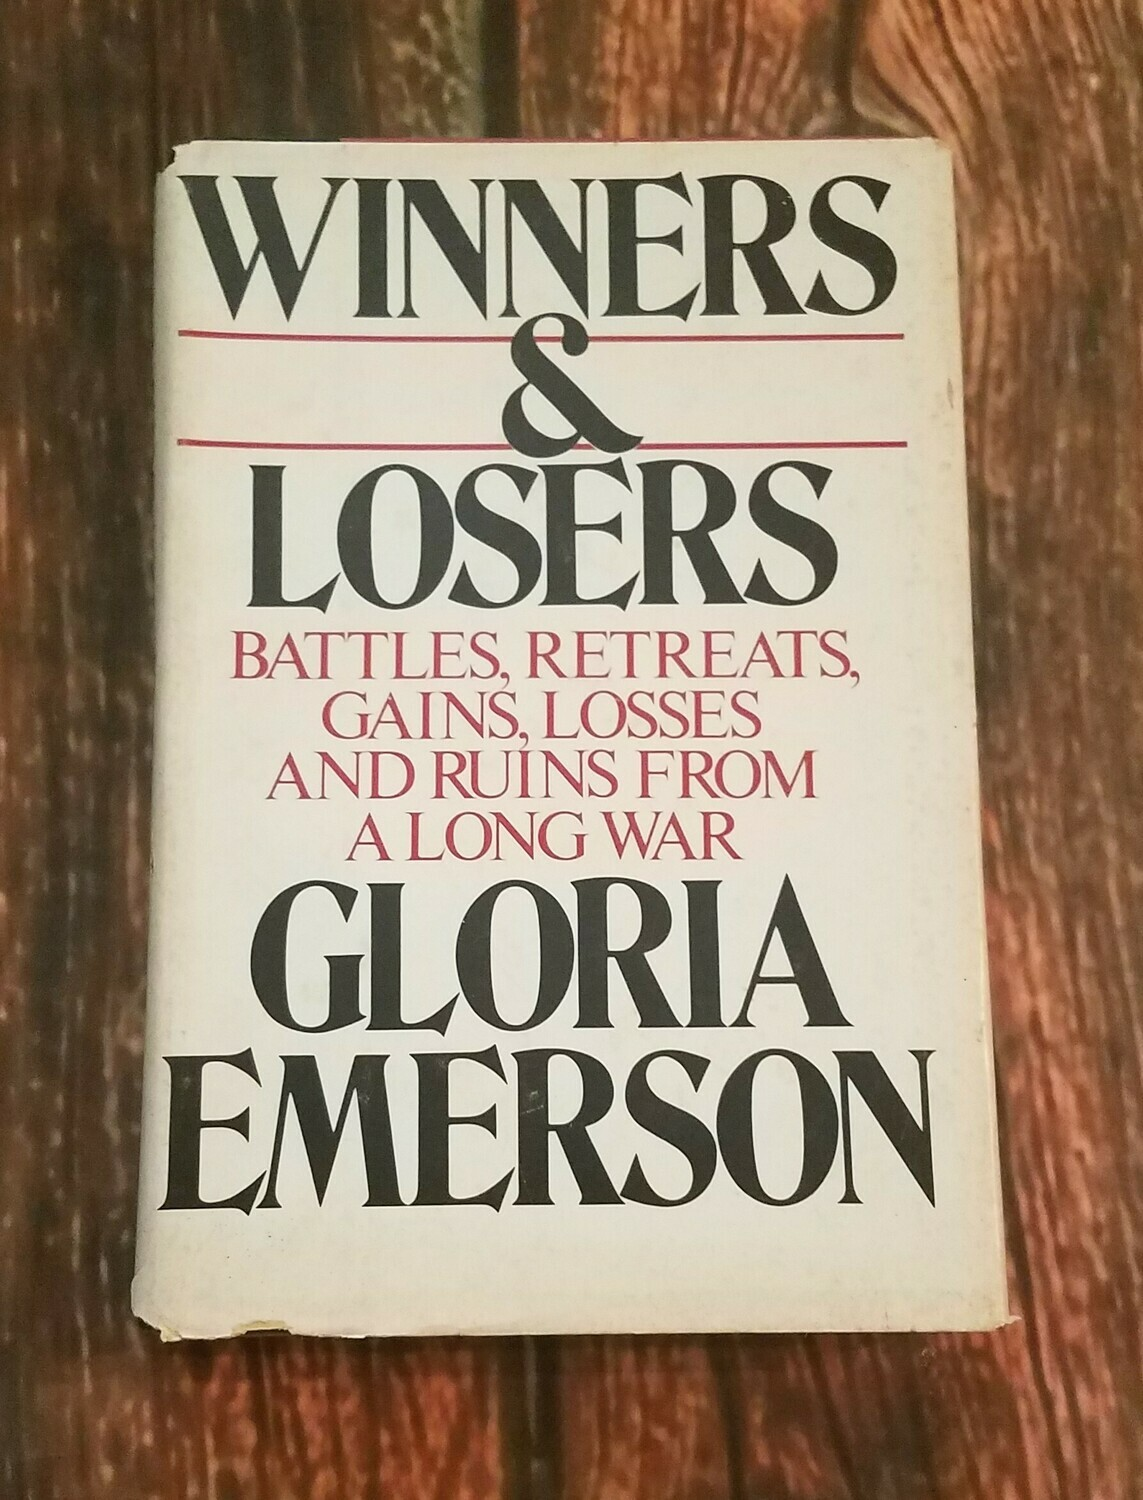 Winners and Losers by Gloria Emerson